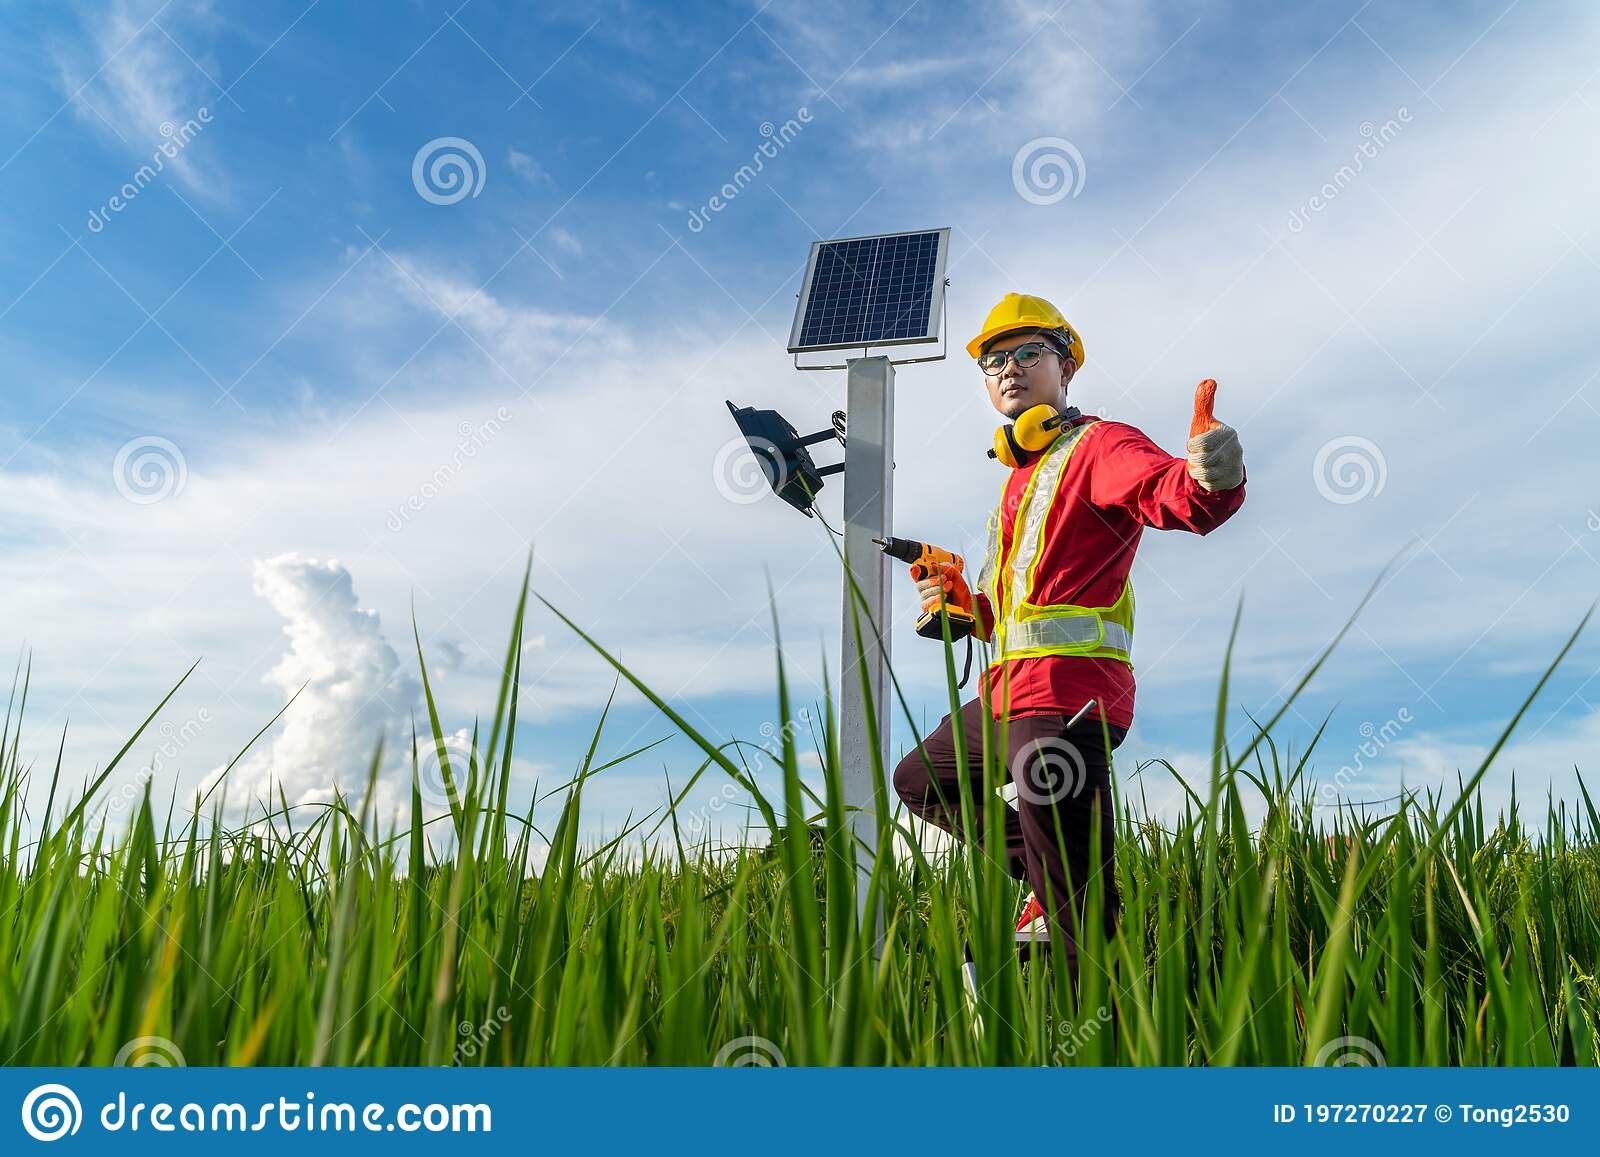 asian technician install the maintenance of the solar panels giving confidence in quality outdoor lighting pole with small solar stock image image of future change 197270227